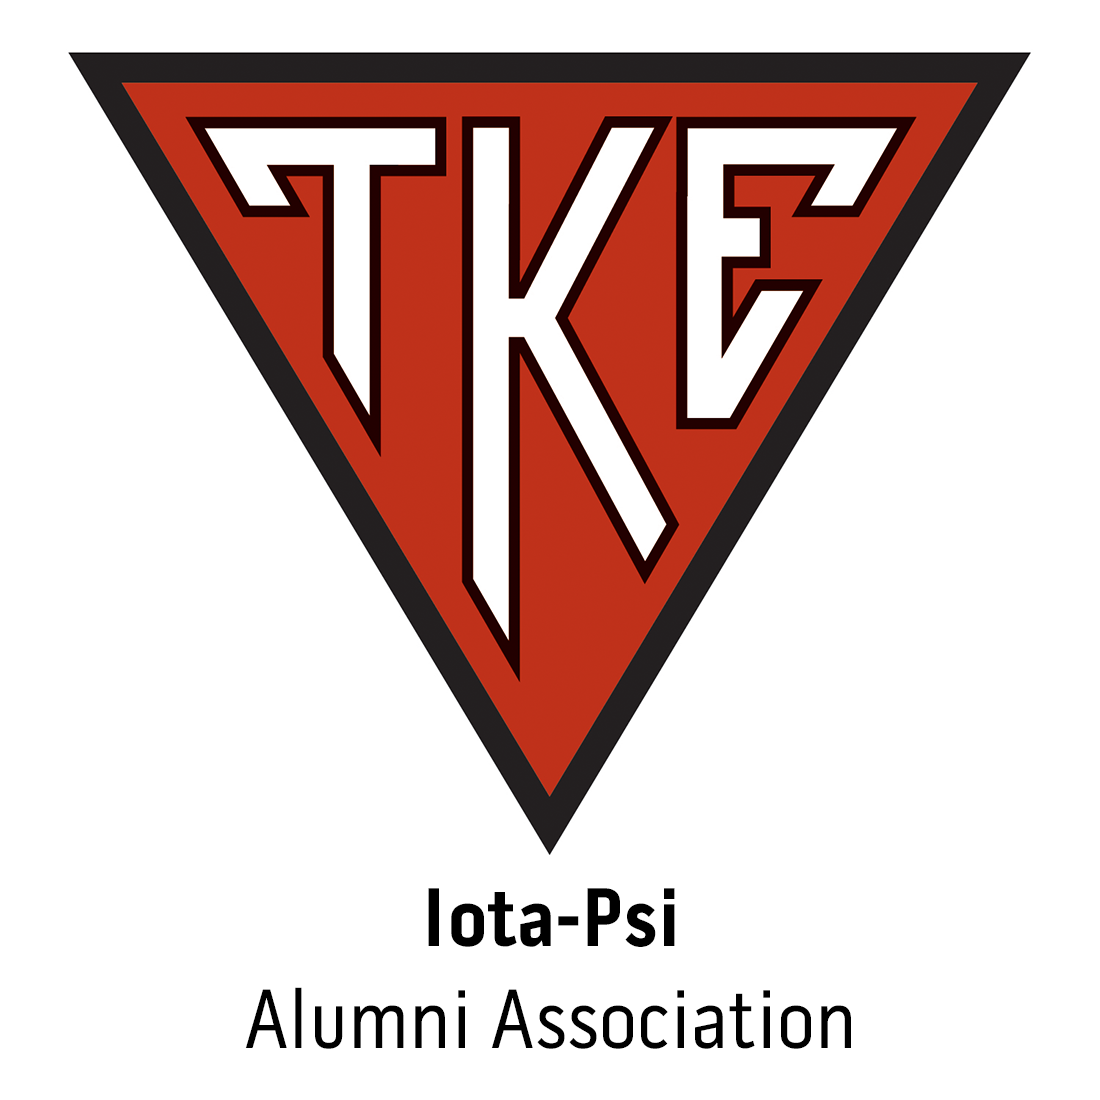 Iota-Psi Alumni Association at Dickinson State University